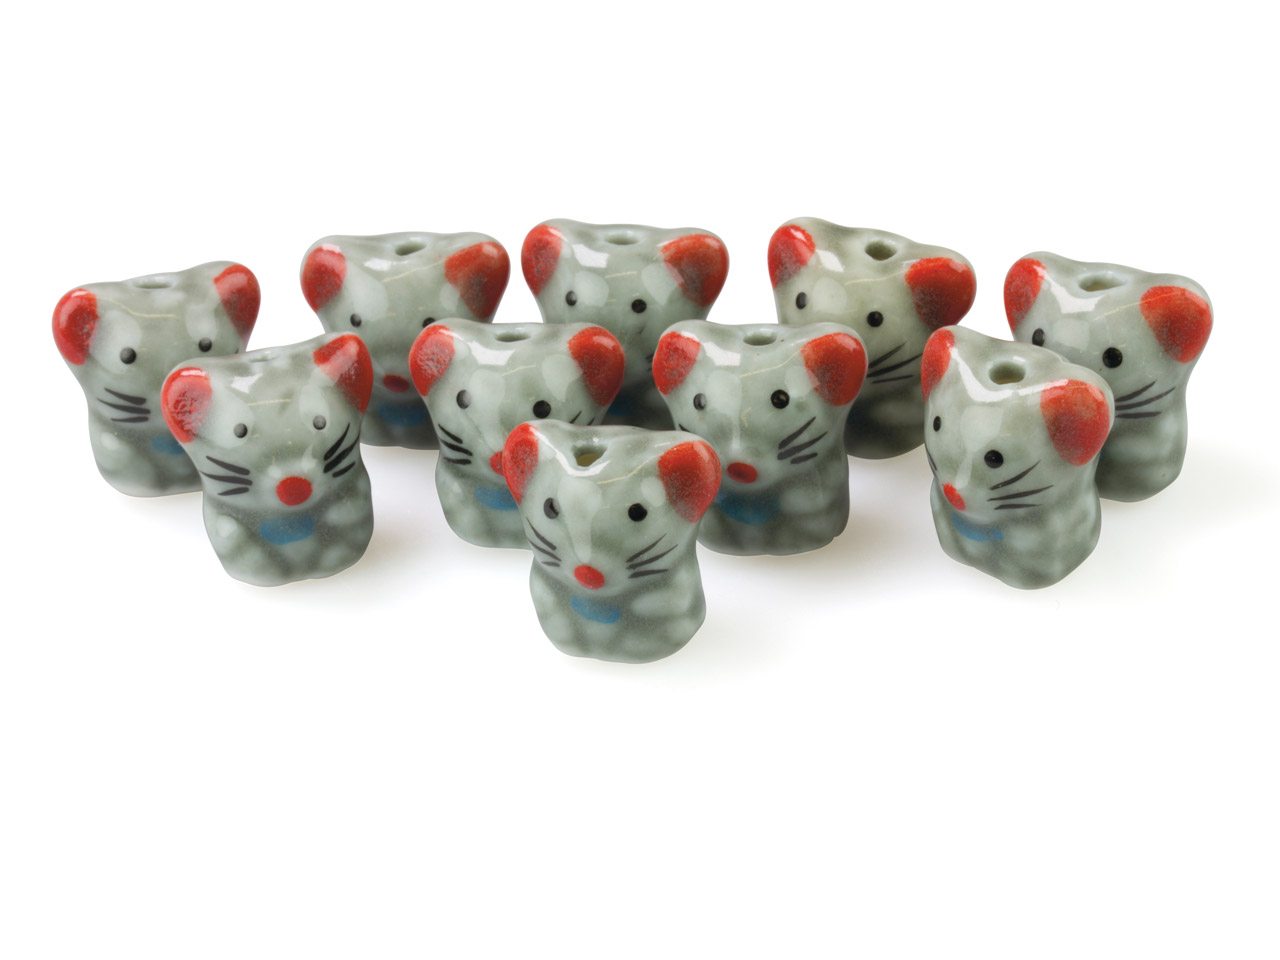 Ceramic Mice, 17x16x13mm, Hand     Painted, Pack of 10